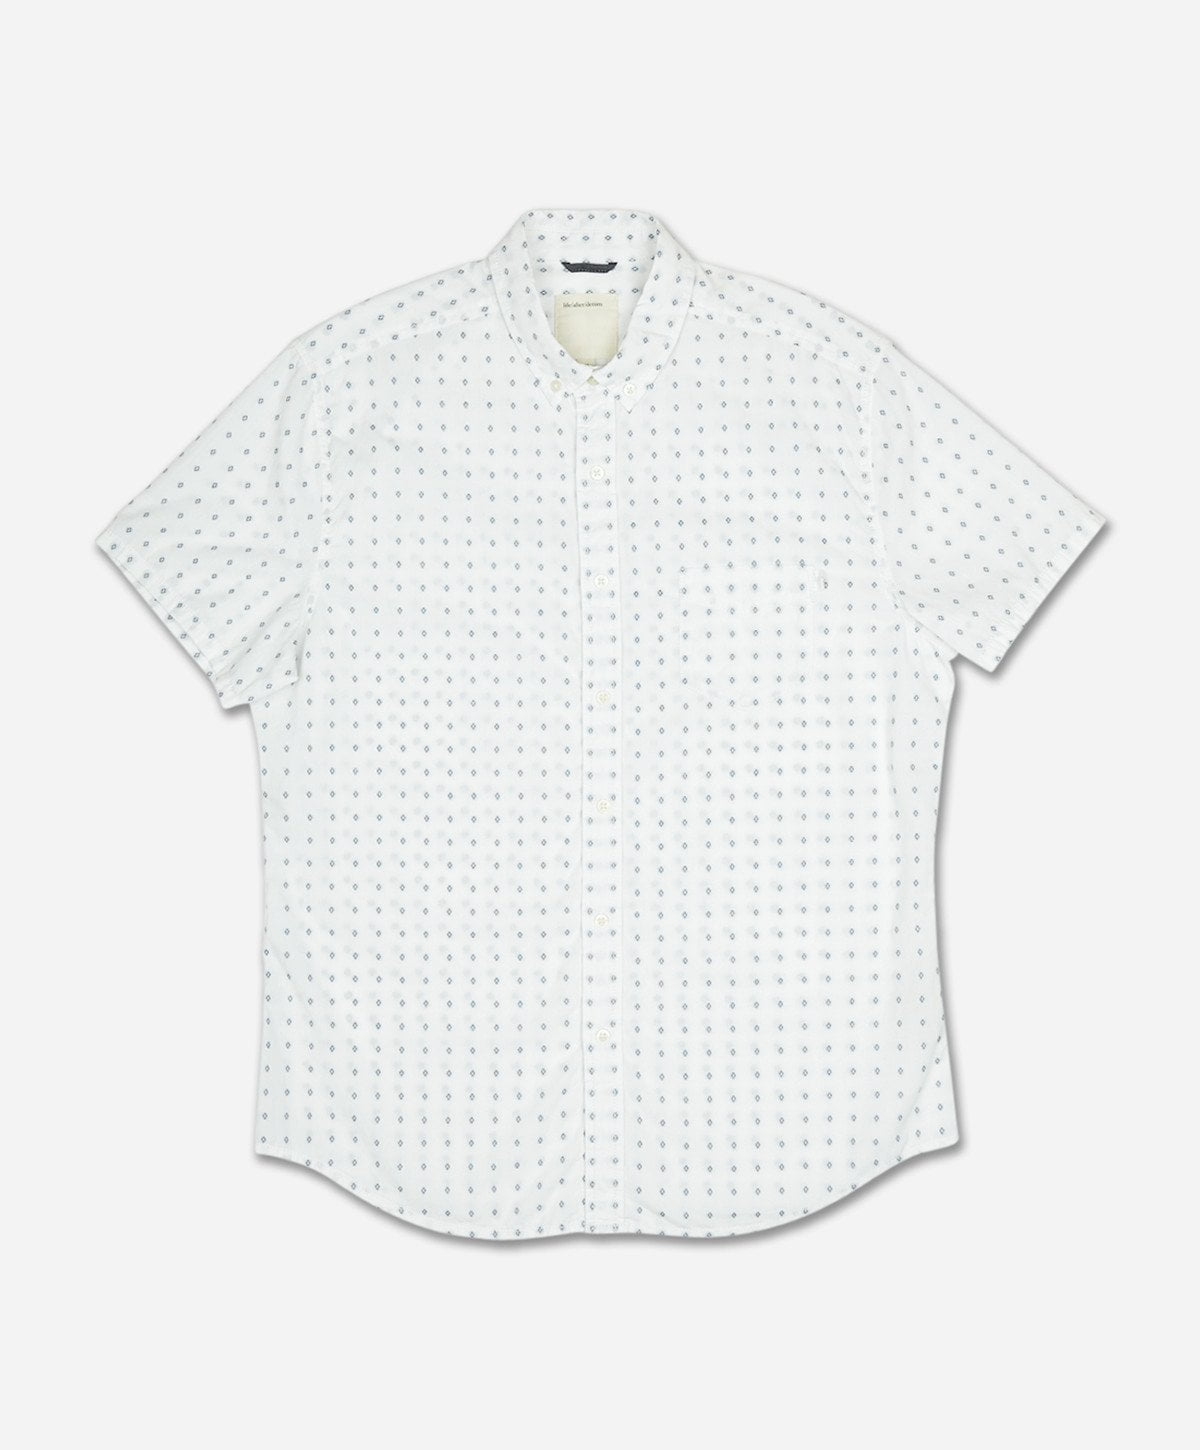 Outfield Short Sleeve Shirt - White